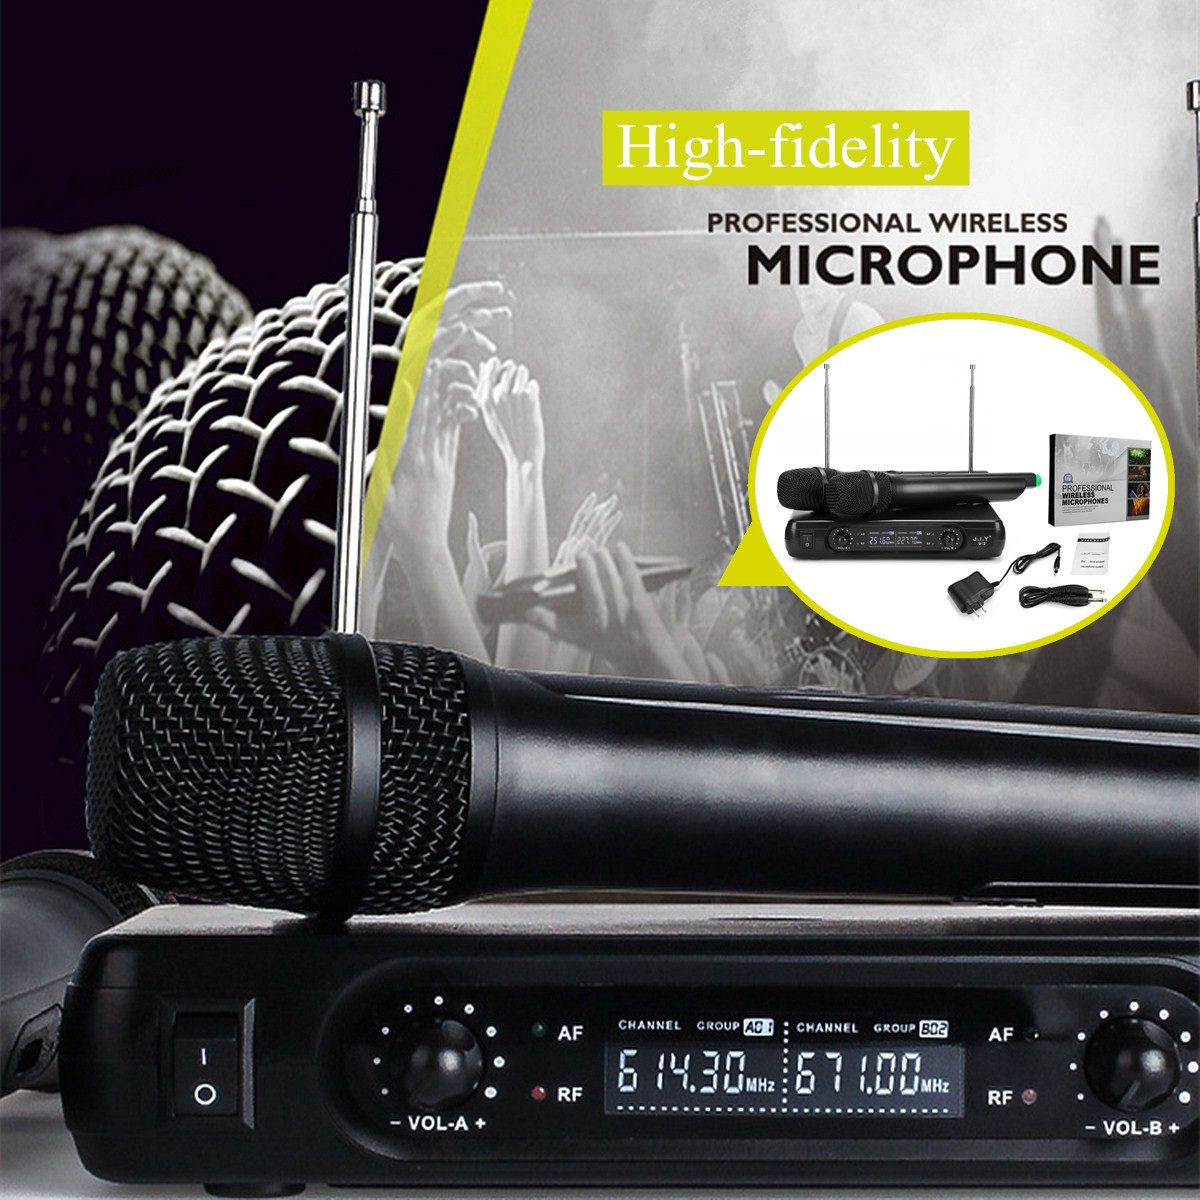 Wireless Microphone SystemHigh-fidelity  2 X Microphones Reproduce 100M True Voice Voice Compression Large Receiving Range